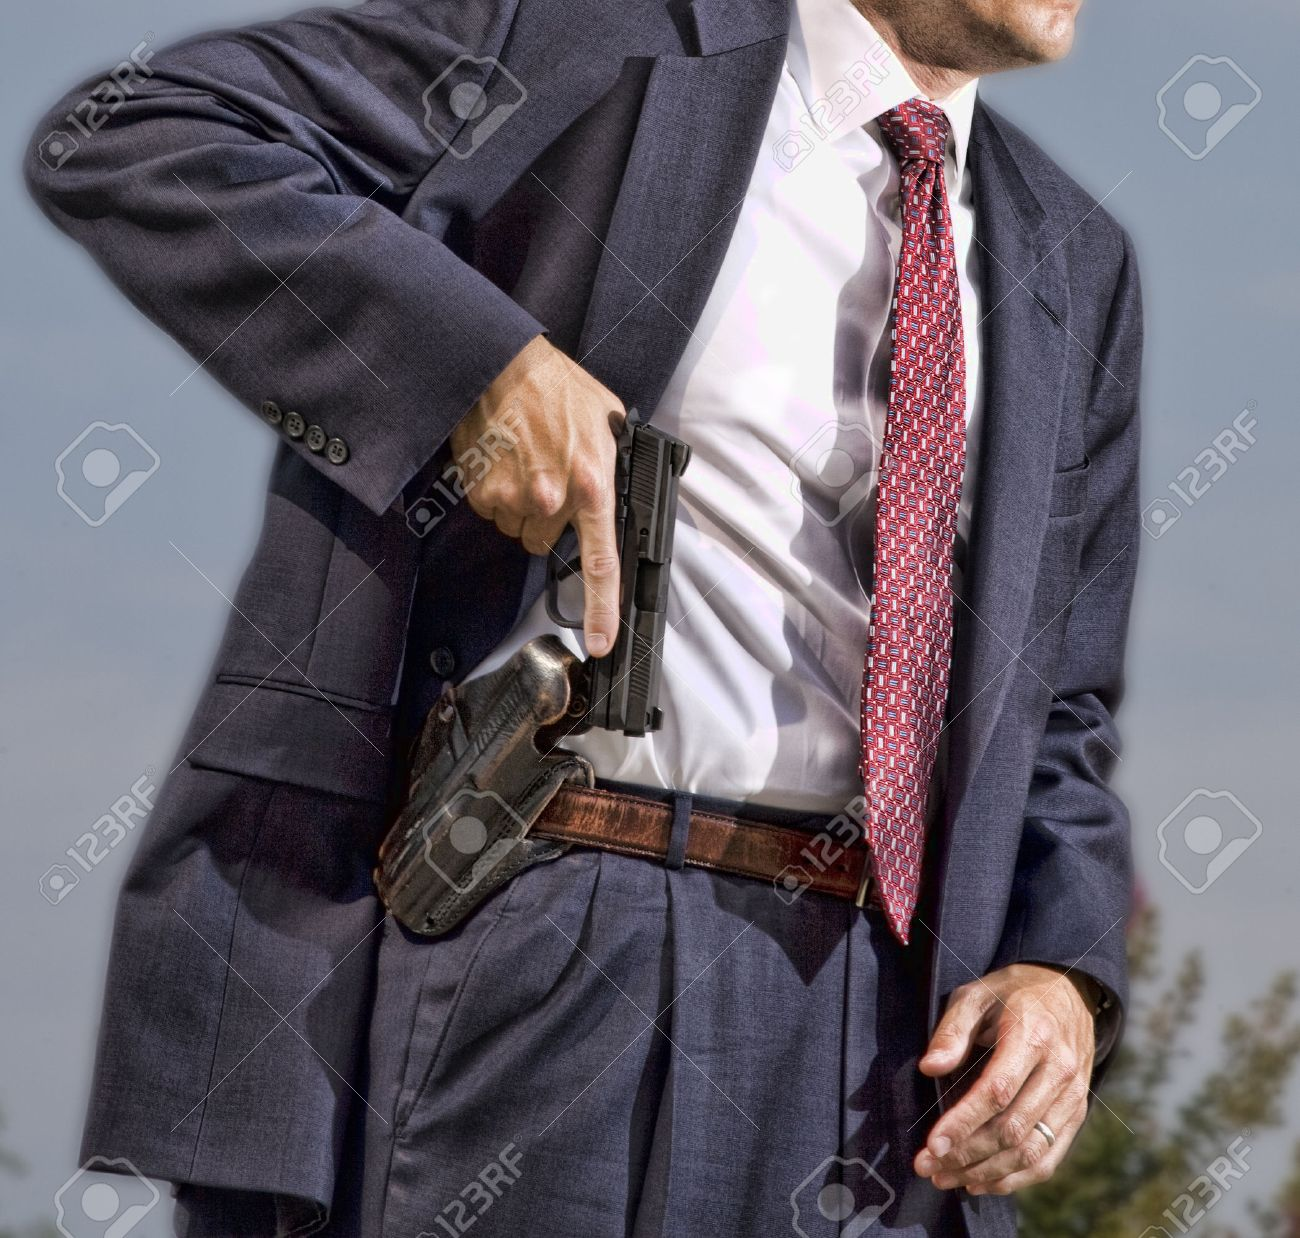 Person with a concealed carry permit starting to draw his handgun - 63414067